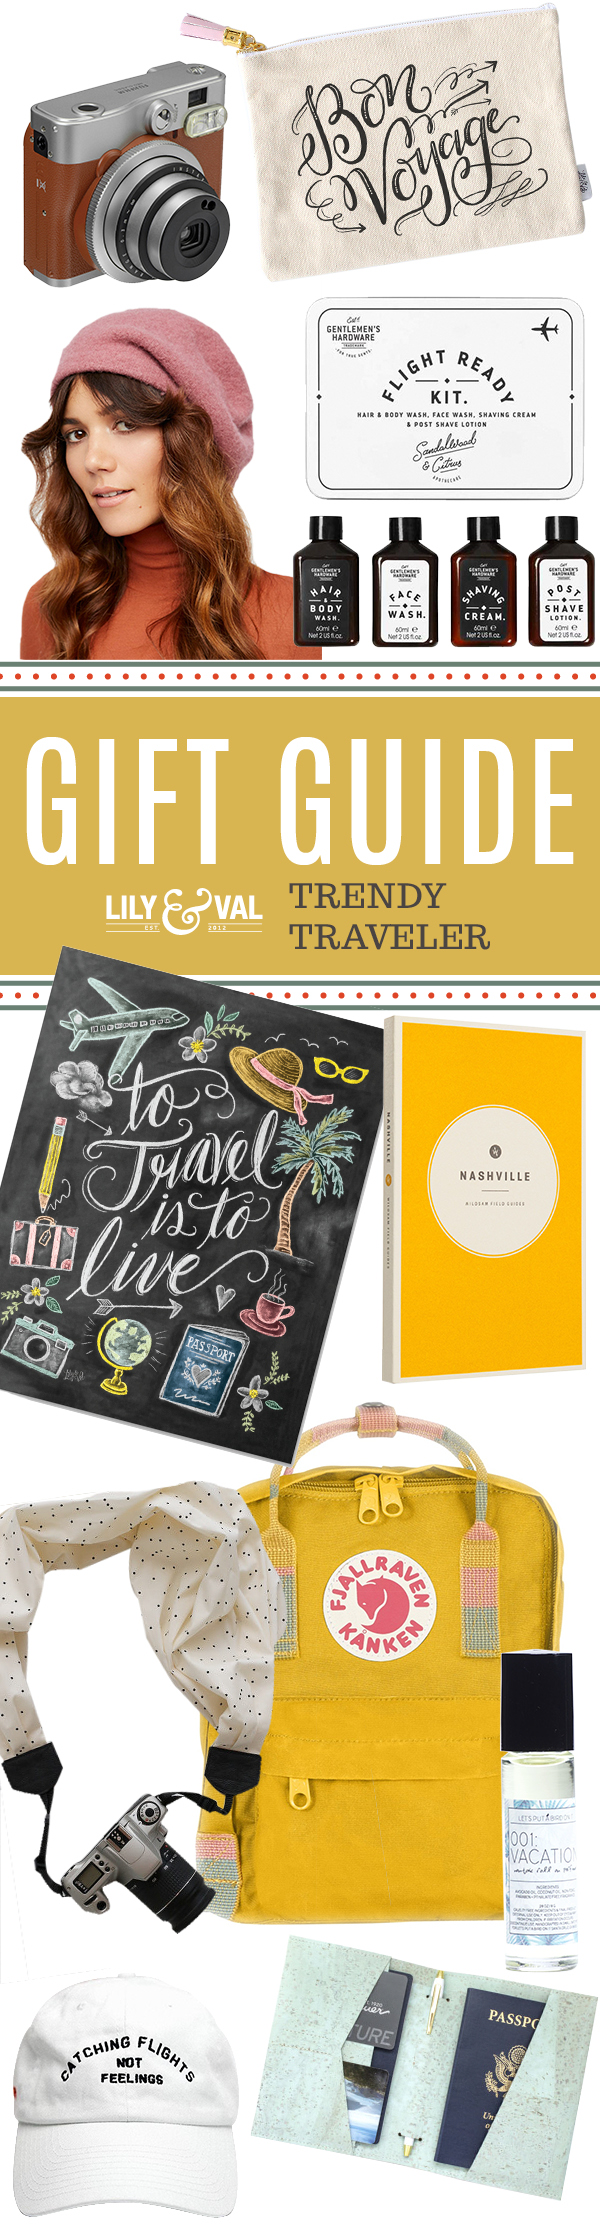 Lily & Val Gift Guide: Trendy Traveler